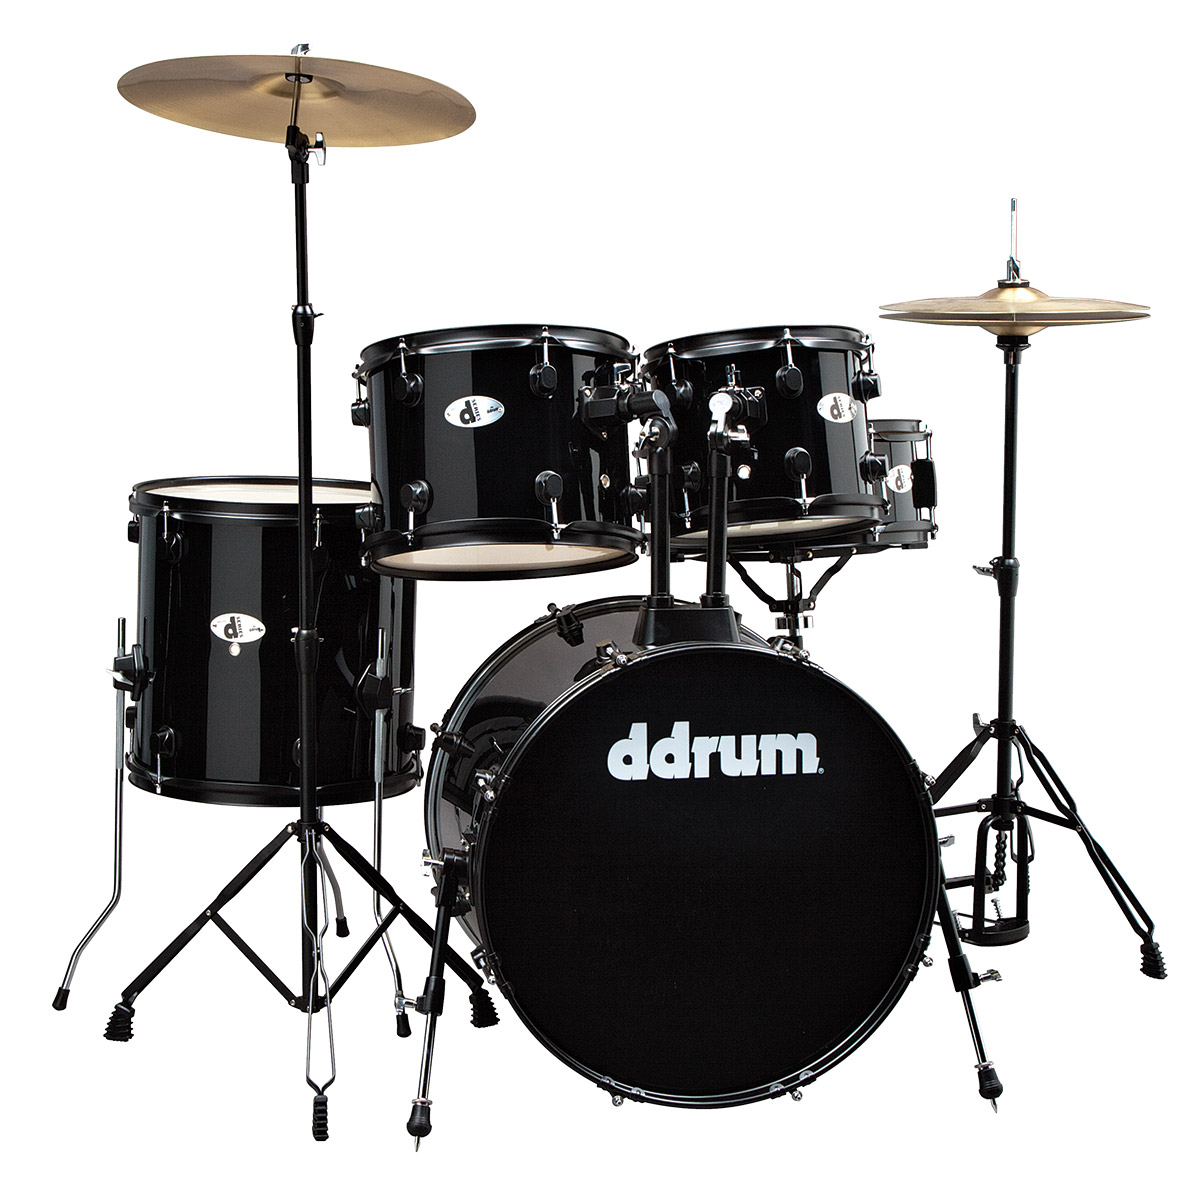 Complete drumset and Drum Lesson Package $469(reg $520) - DDrum D120B complete drumset with hardware, throne, and cymbals The ddrum d120B 5-Piece drum set offers power and tone packed into a compact format, with a slightly downscaled kick drum and toms. In addition to drums, the d120B kit includes a straight cymbal stand, hi-hat stand, kick pedal, snare stand, and even a throne plus 14